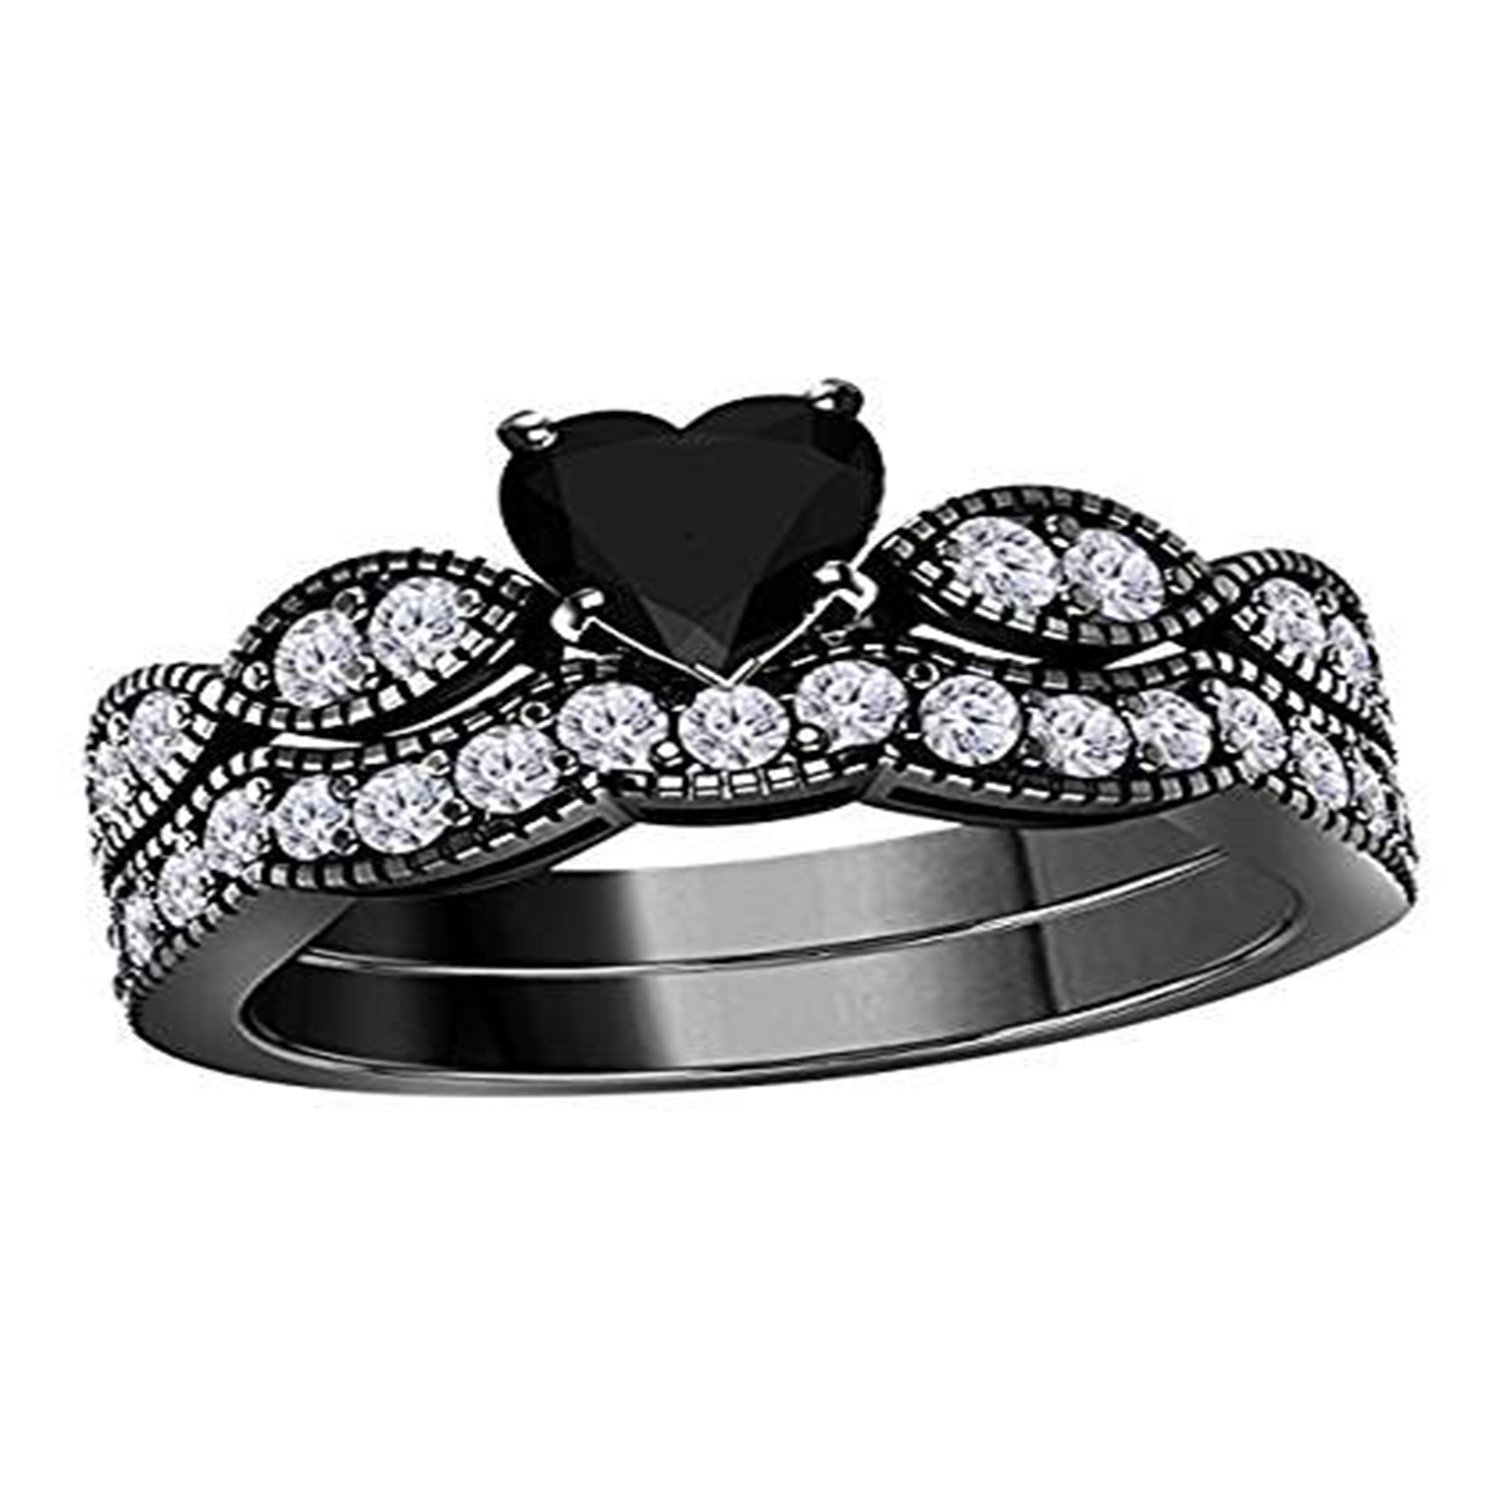 Suhana Jewellery Engagement Wedding Ring with Band 14K Black Gold Fn Alloy Heart Cut Simulated Diamond Studded